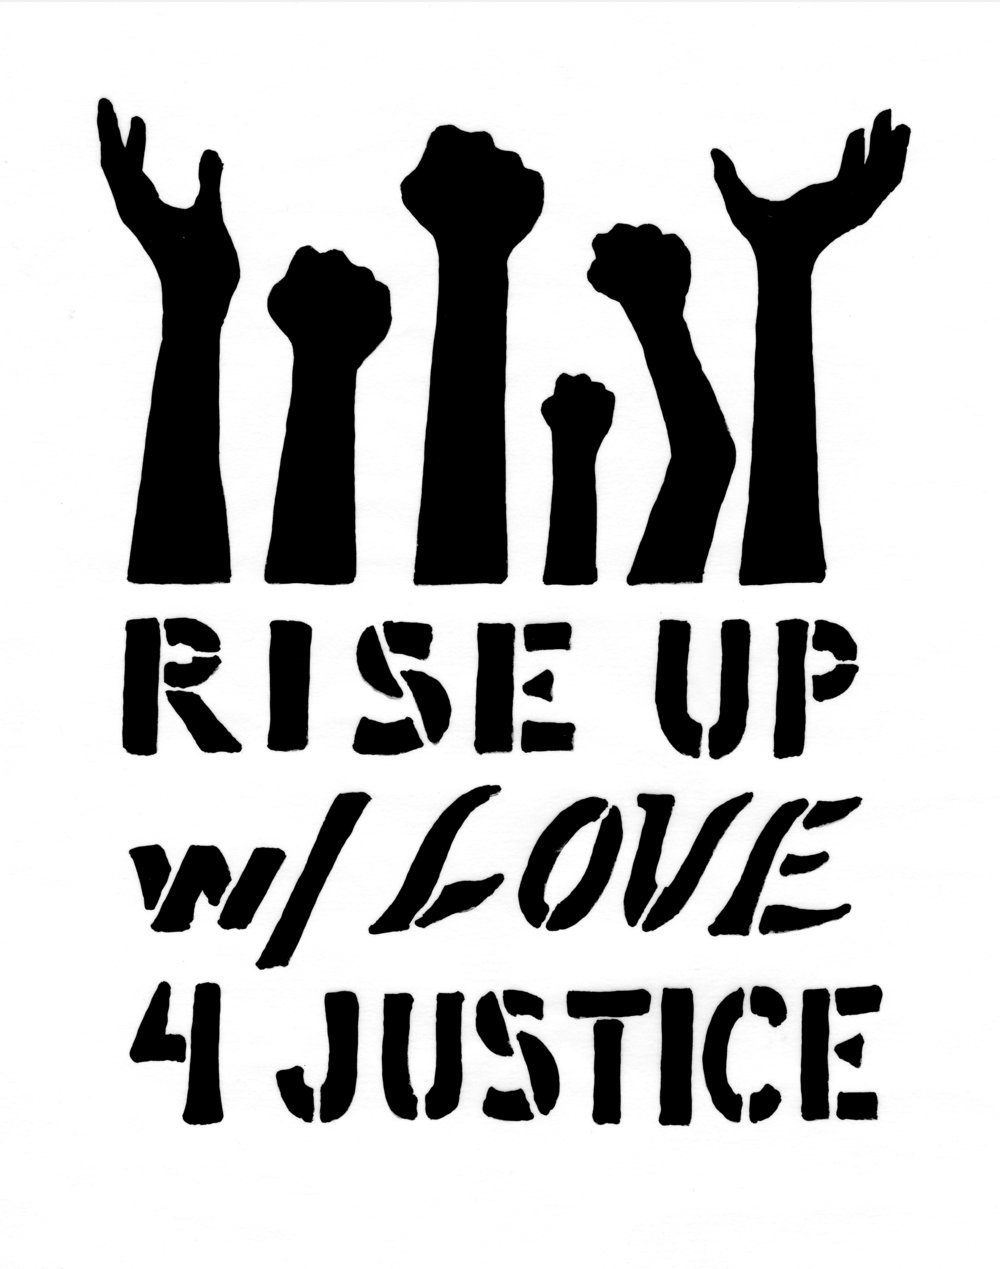 Rise Up w_ love 4 justice.jpeg